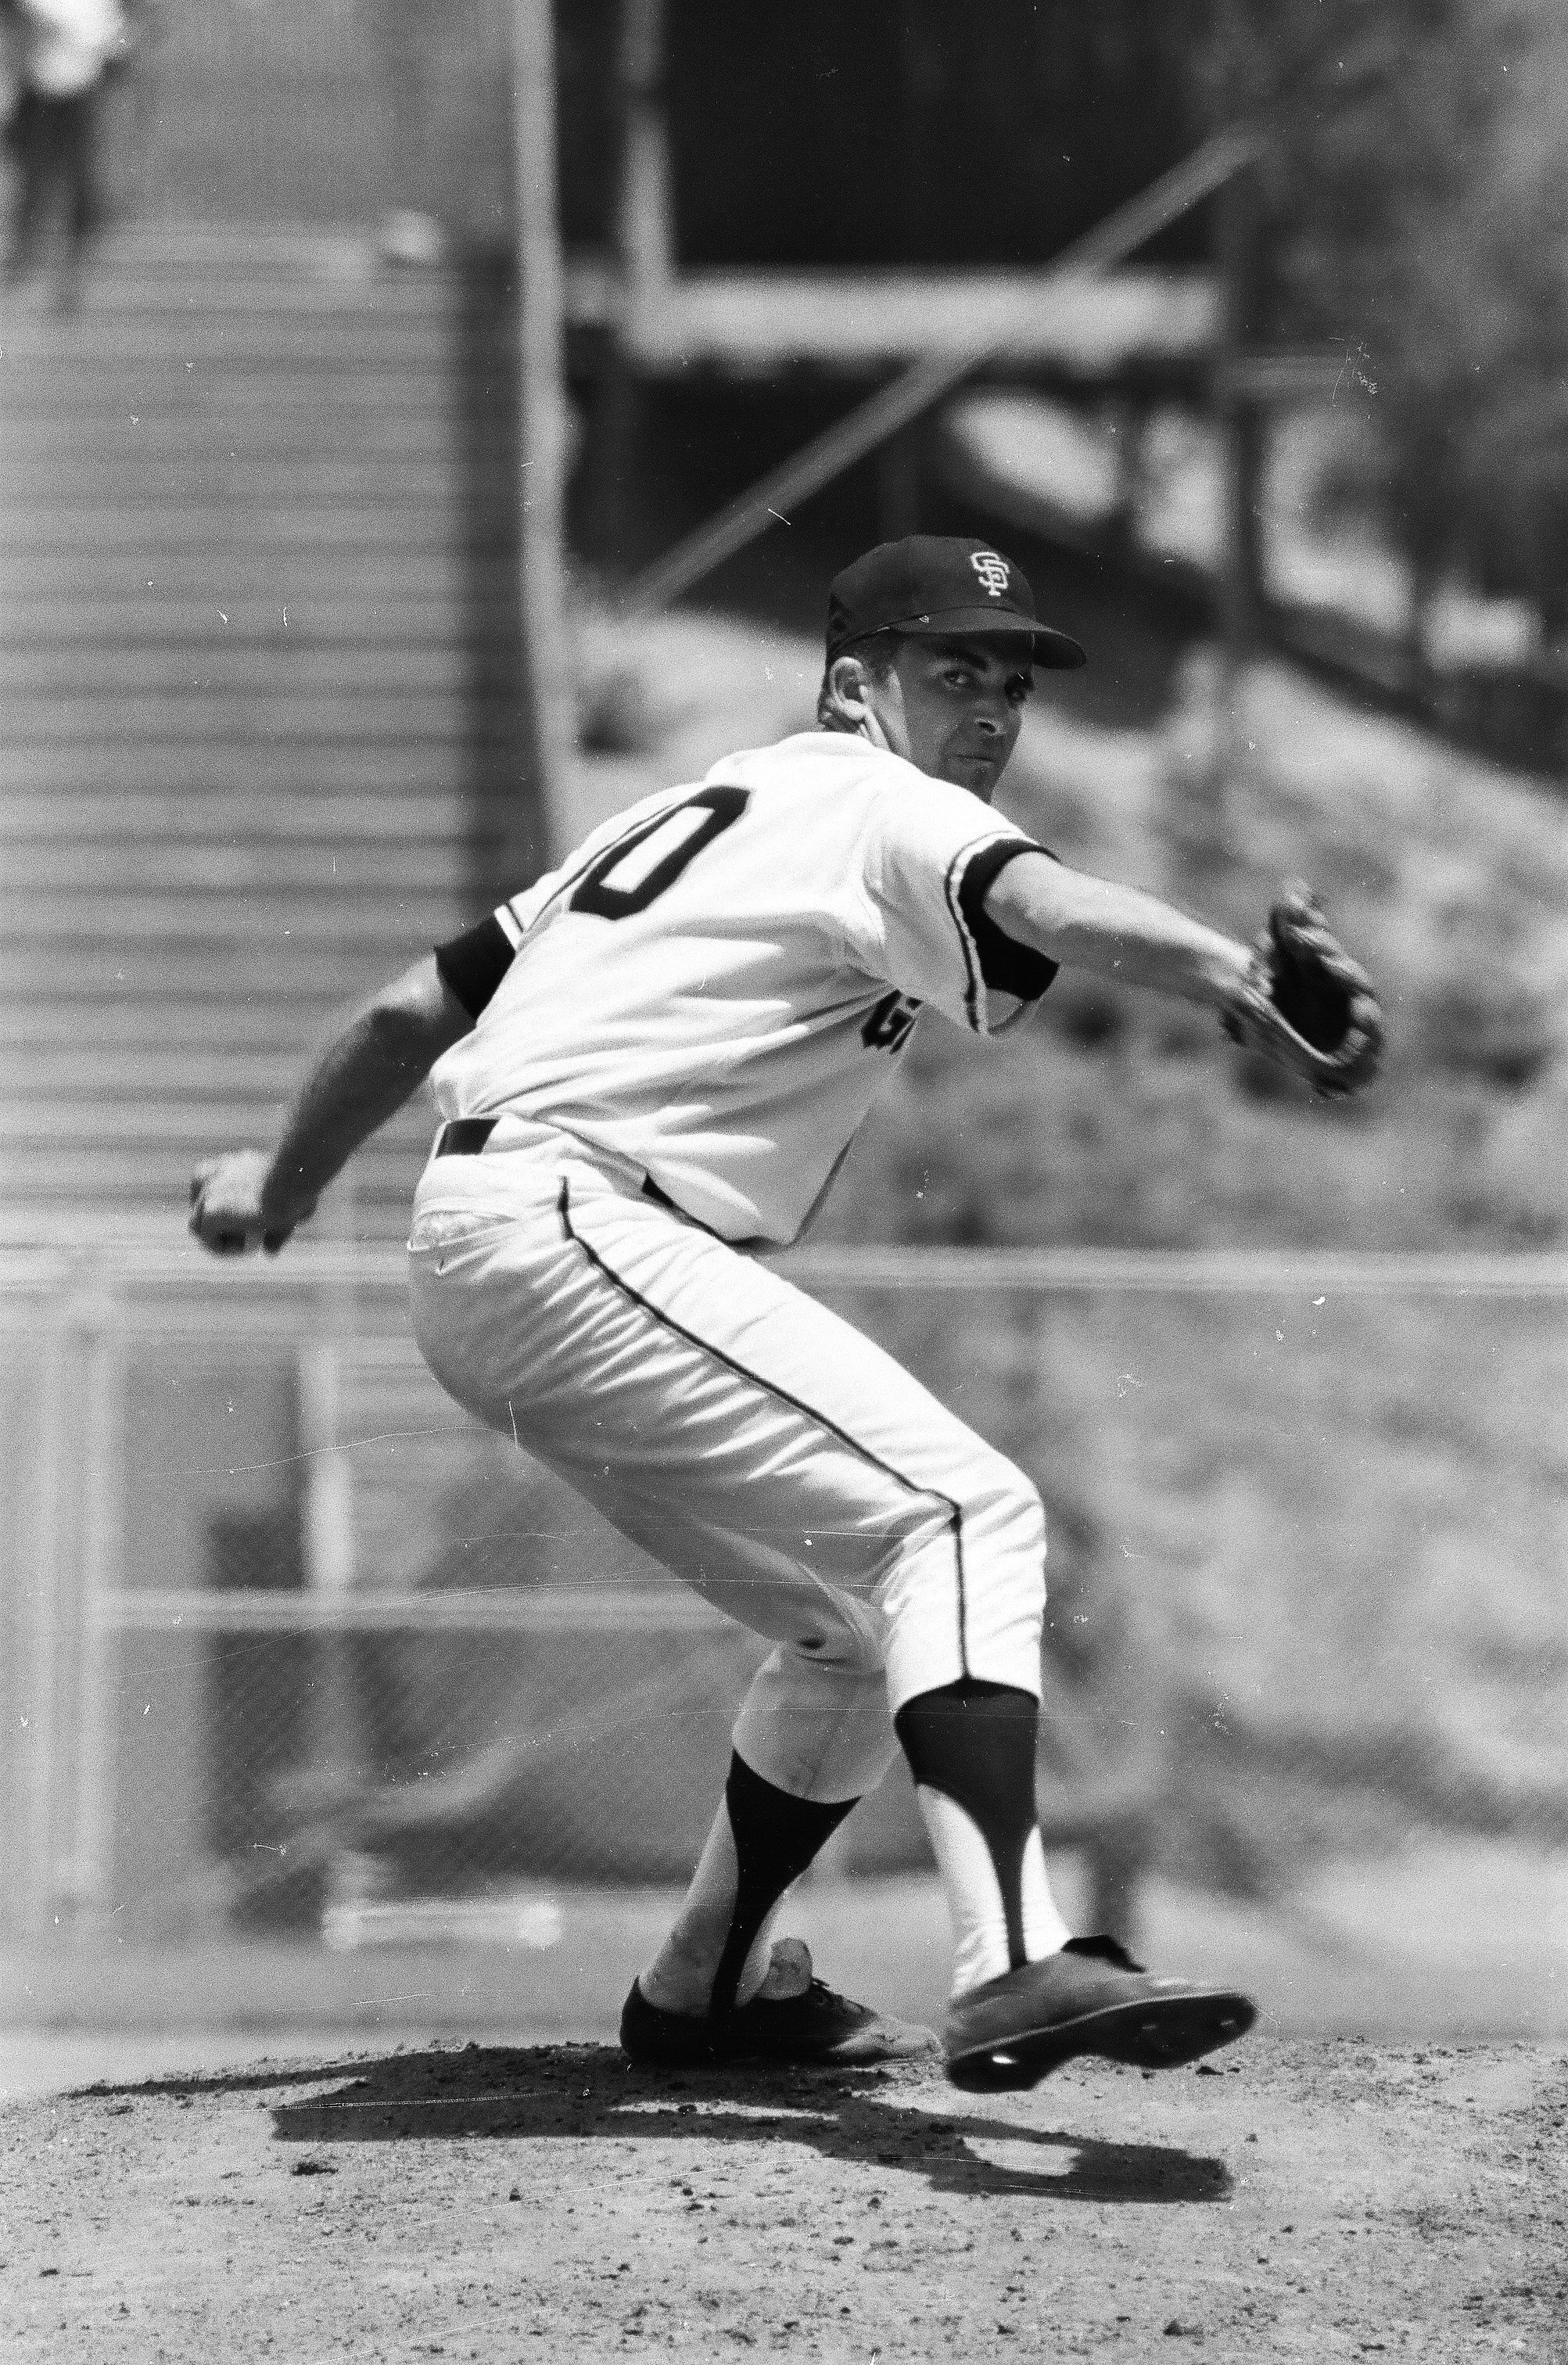 Mike McCormick of the San Francisco Giants pitches during the 1967 season. | Source: Getty Images.